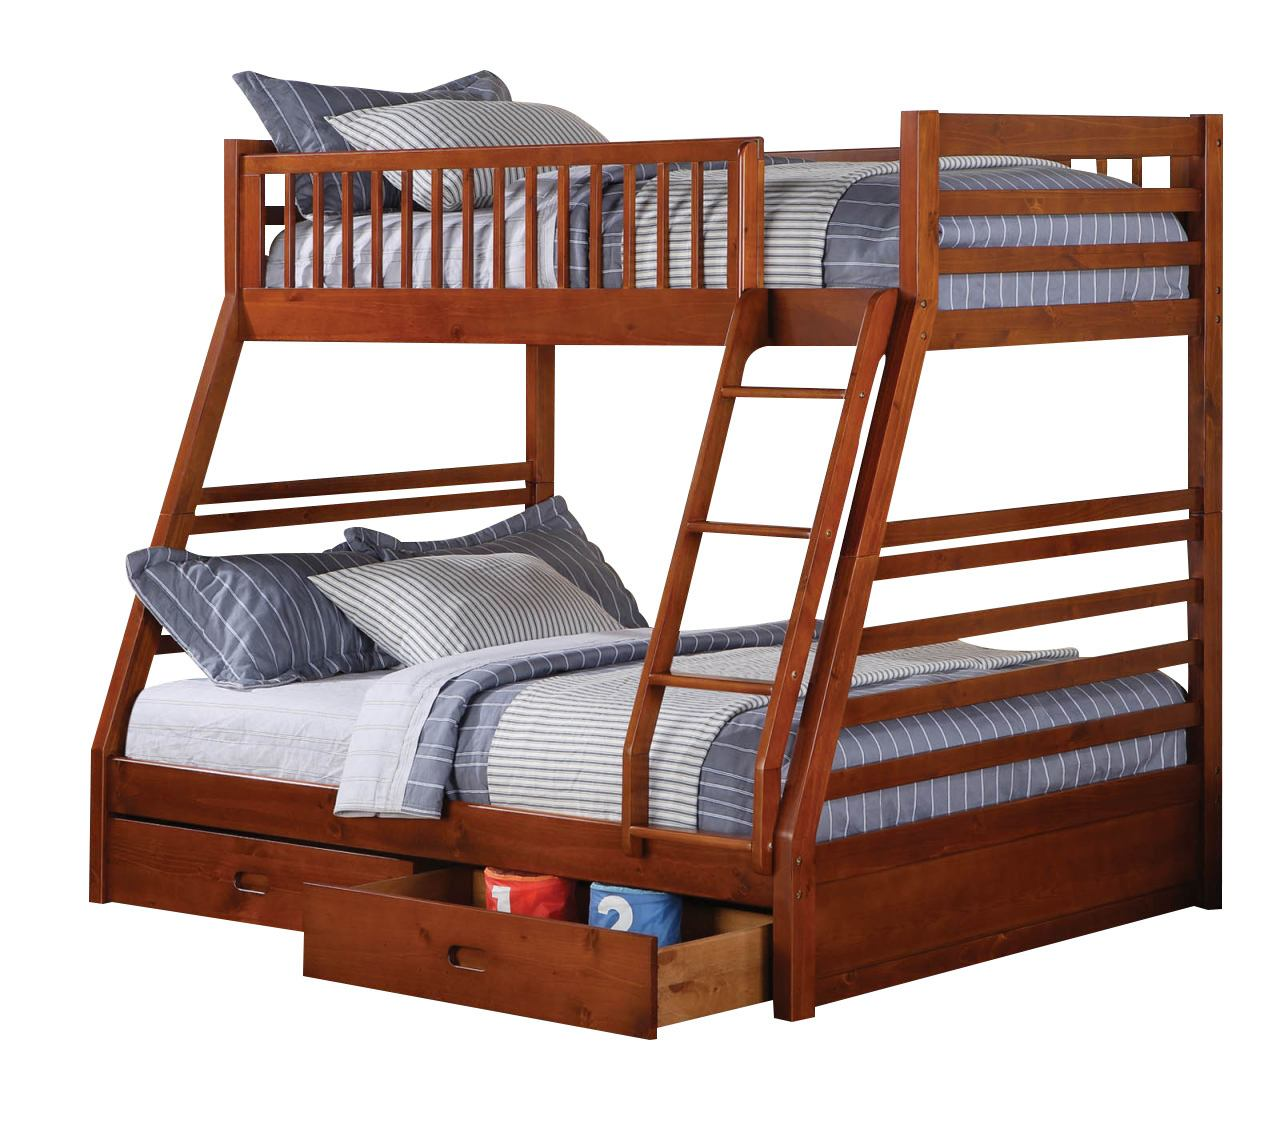 Coaster Youth Twin/Full Bunk Bed in Brown Oak 460183